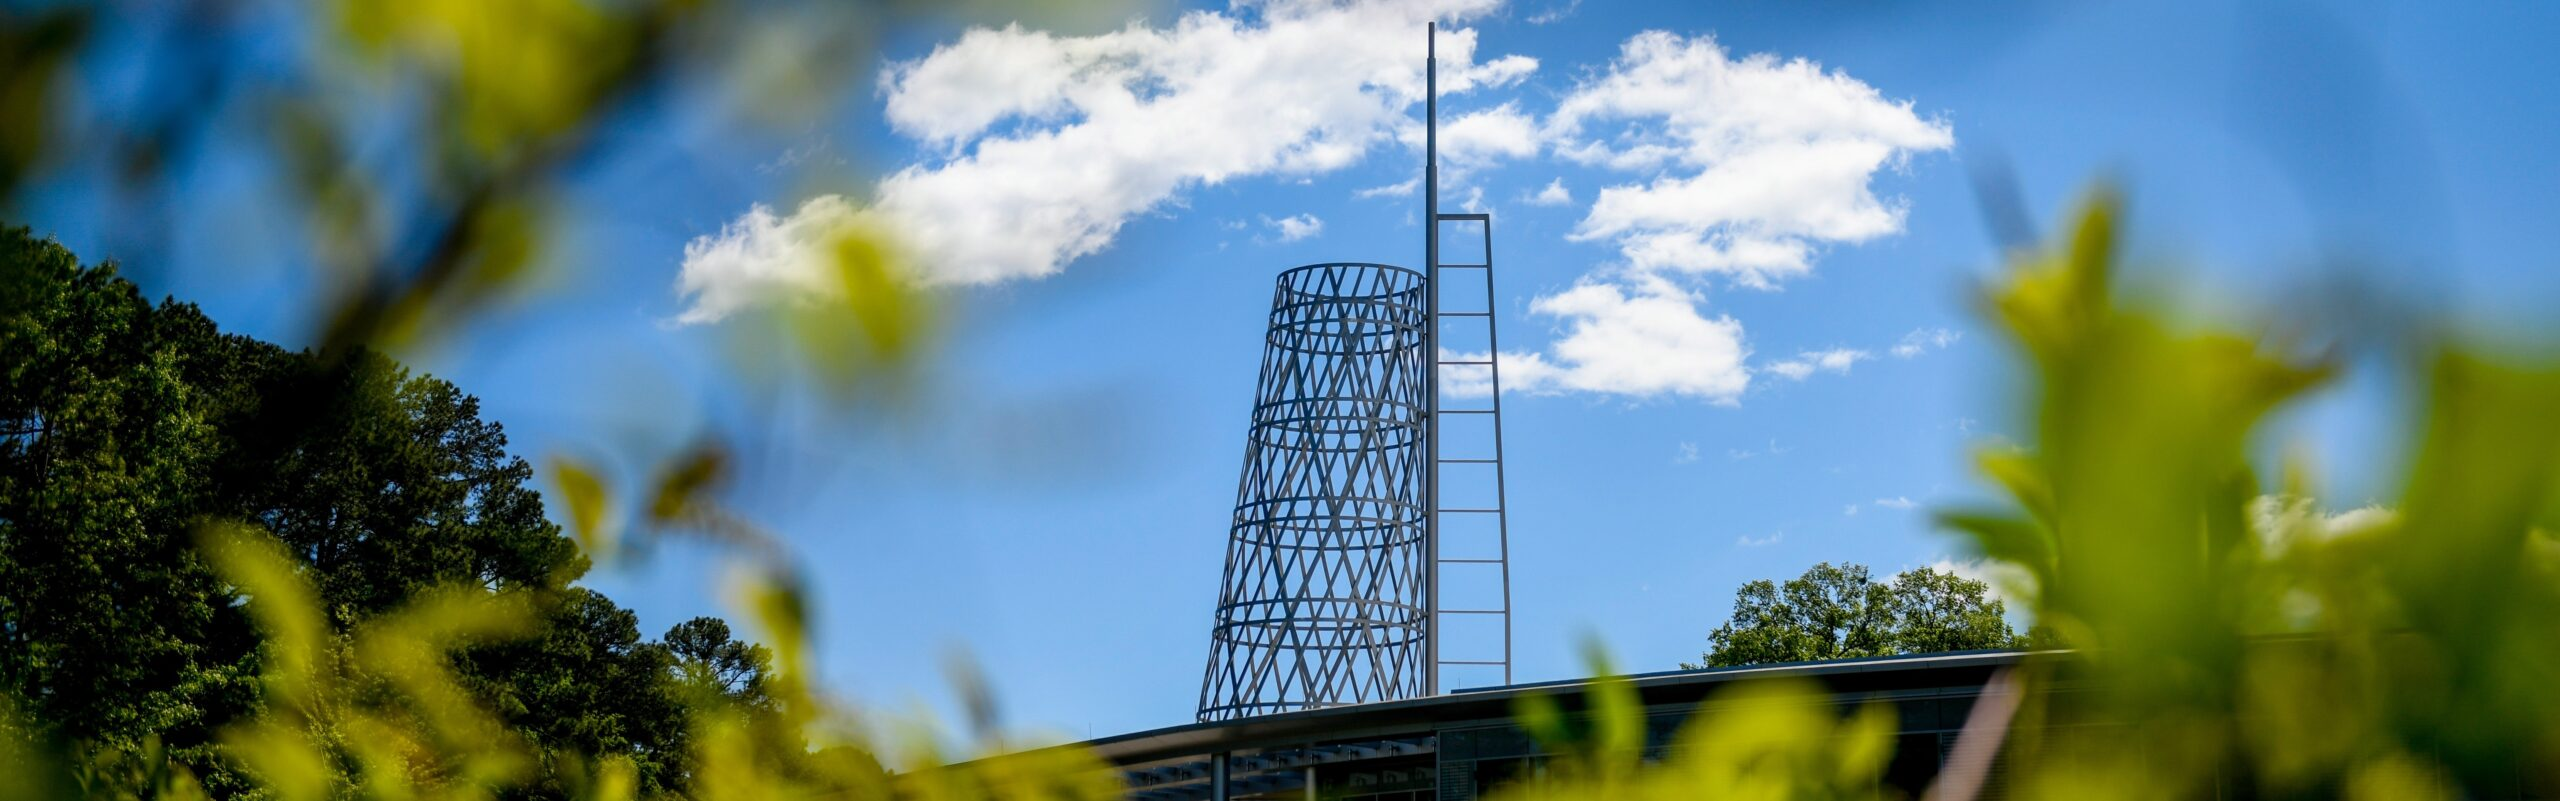 Tech Tower reaches into the blue sky above Talley Student Union